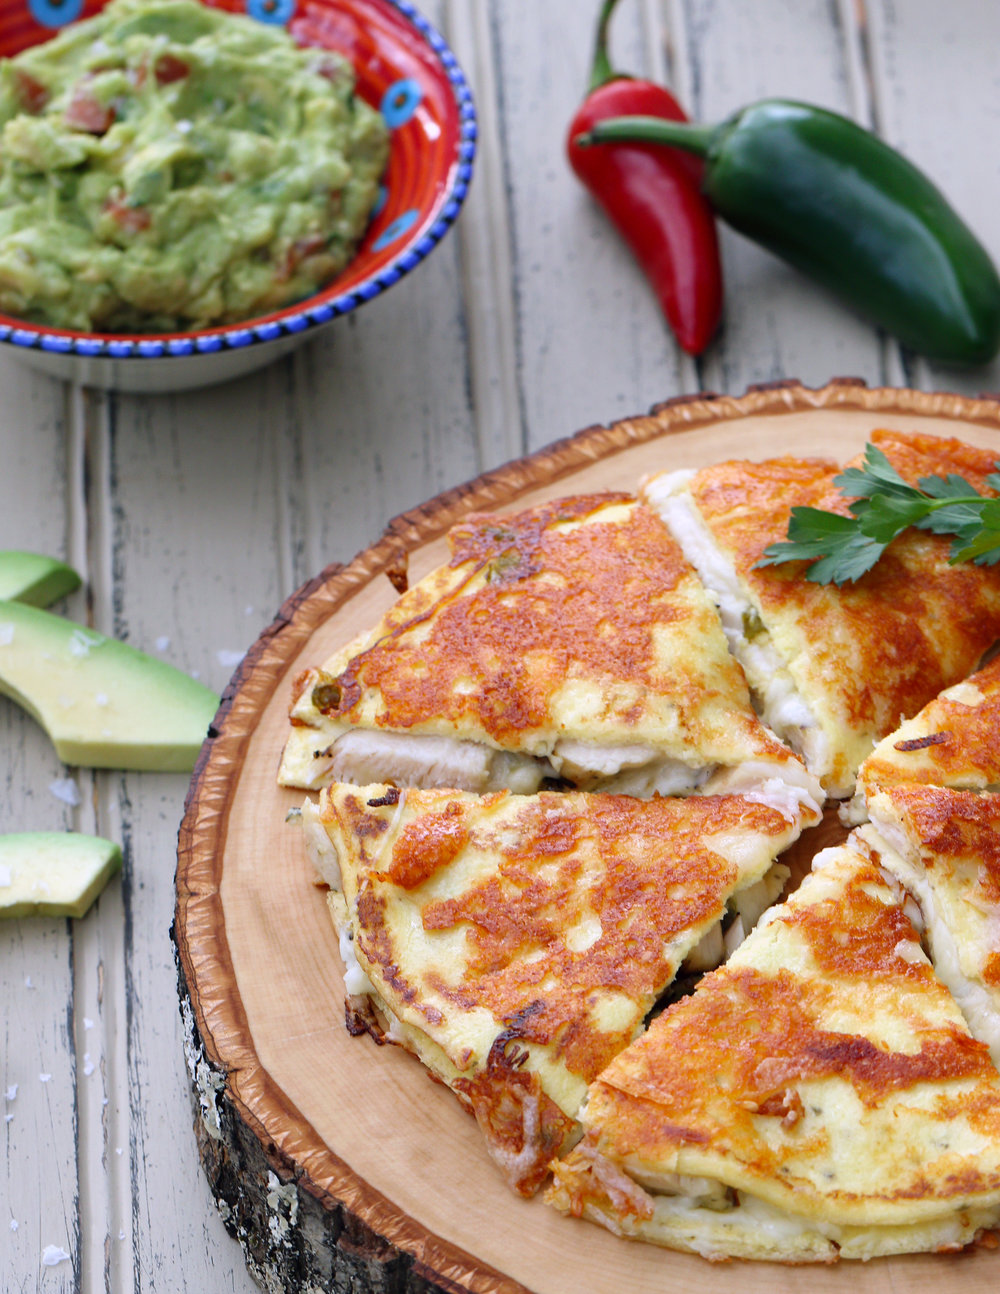 HOT FILLED QUESADILLAS